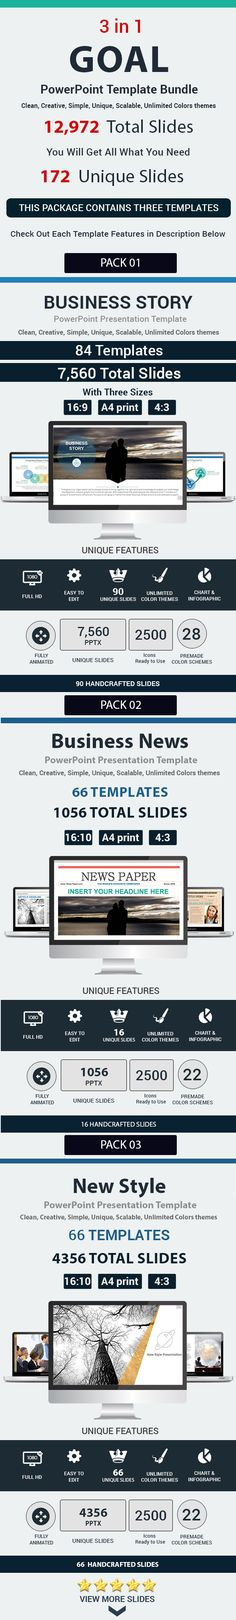 Goal 3 in 1 PowerPoint Template Bundle #design #slides Download: http://graphicriver.net/item/-goal-3-in-1-powerpoint-template-bundle/12814094?ref=ksioks